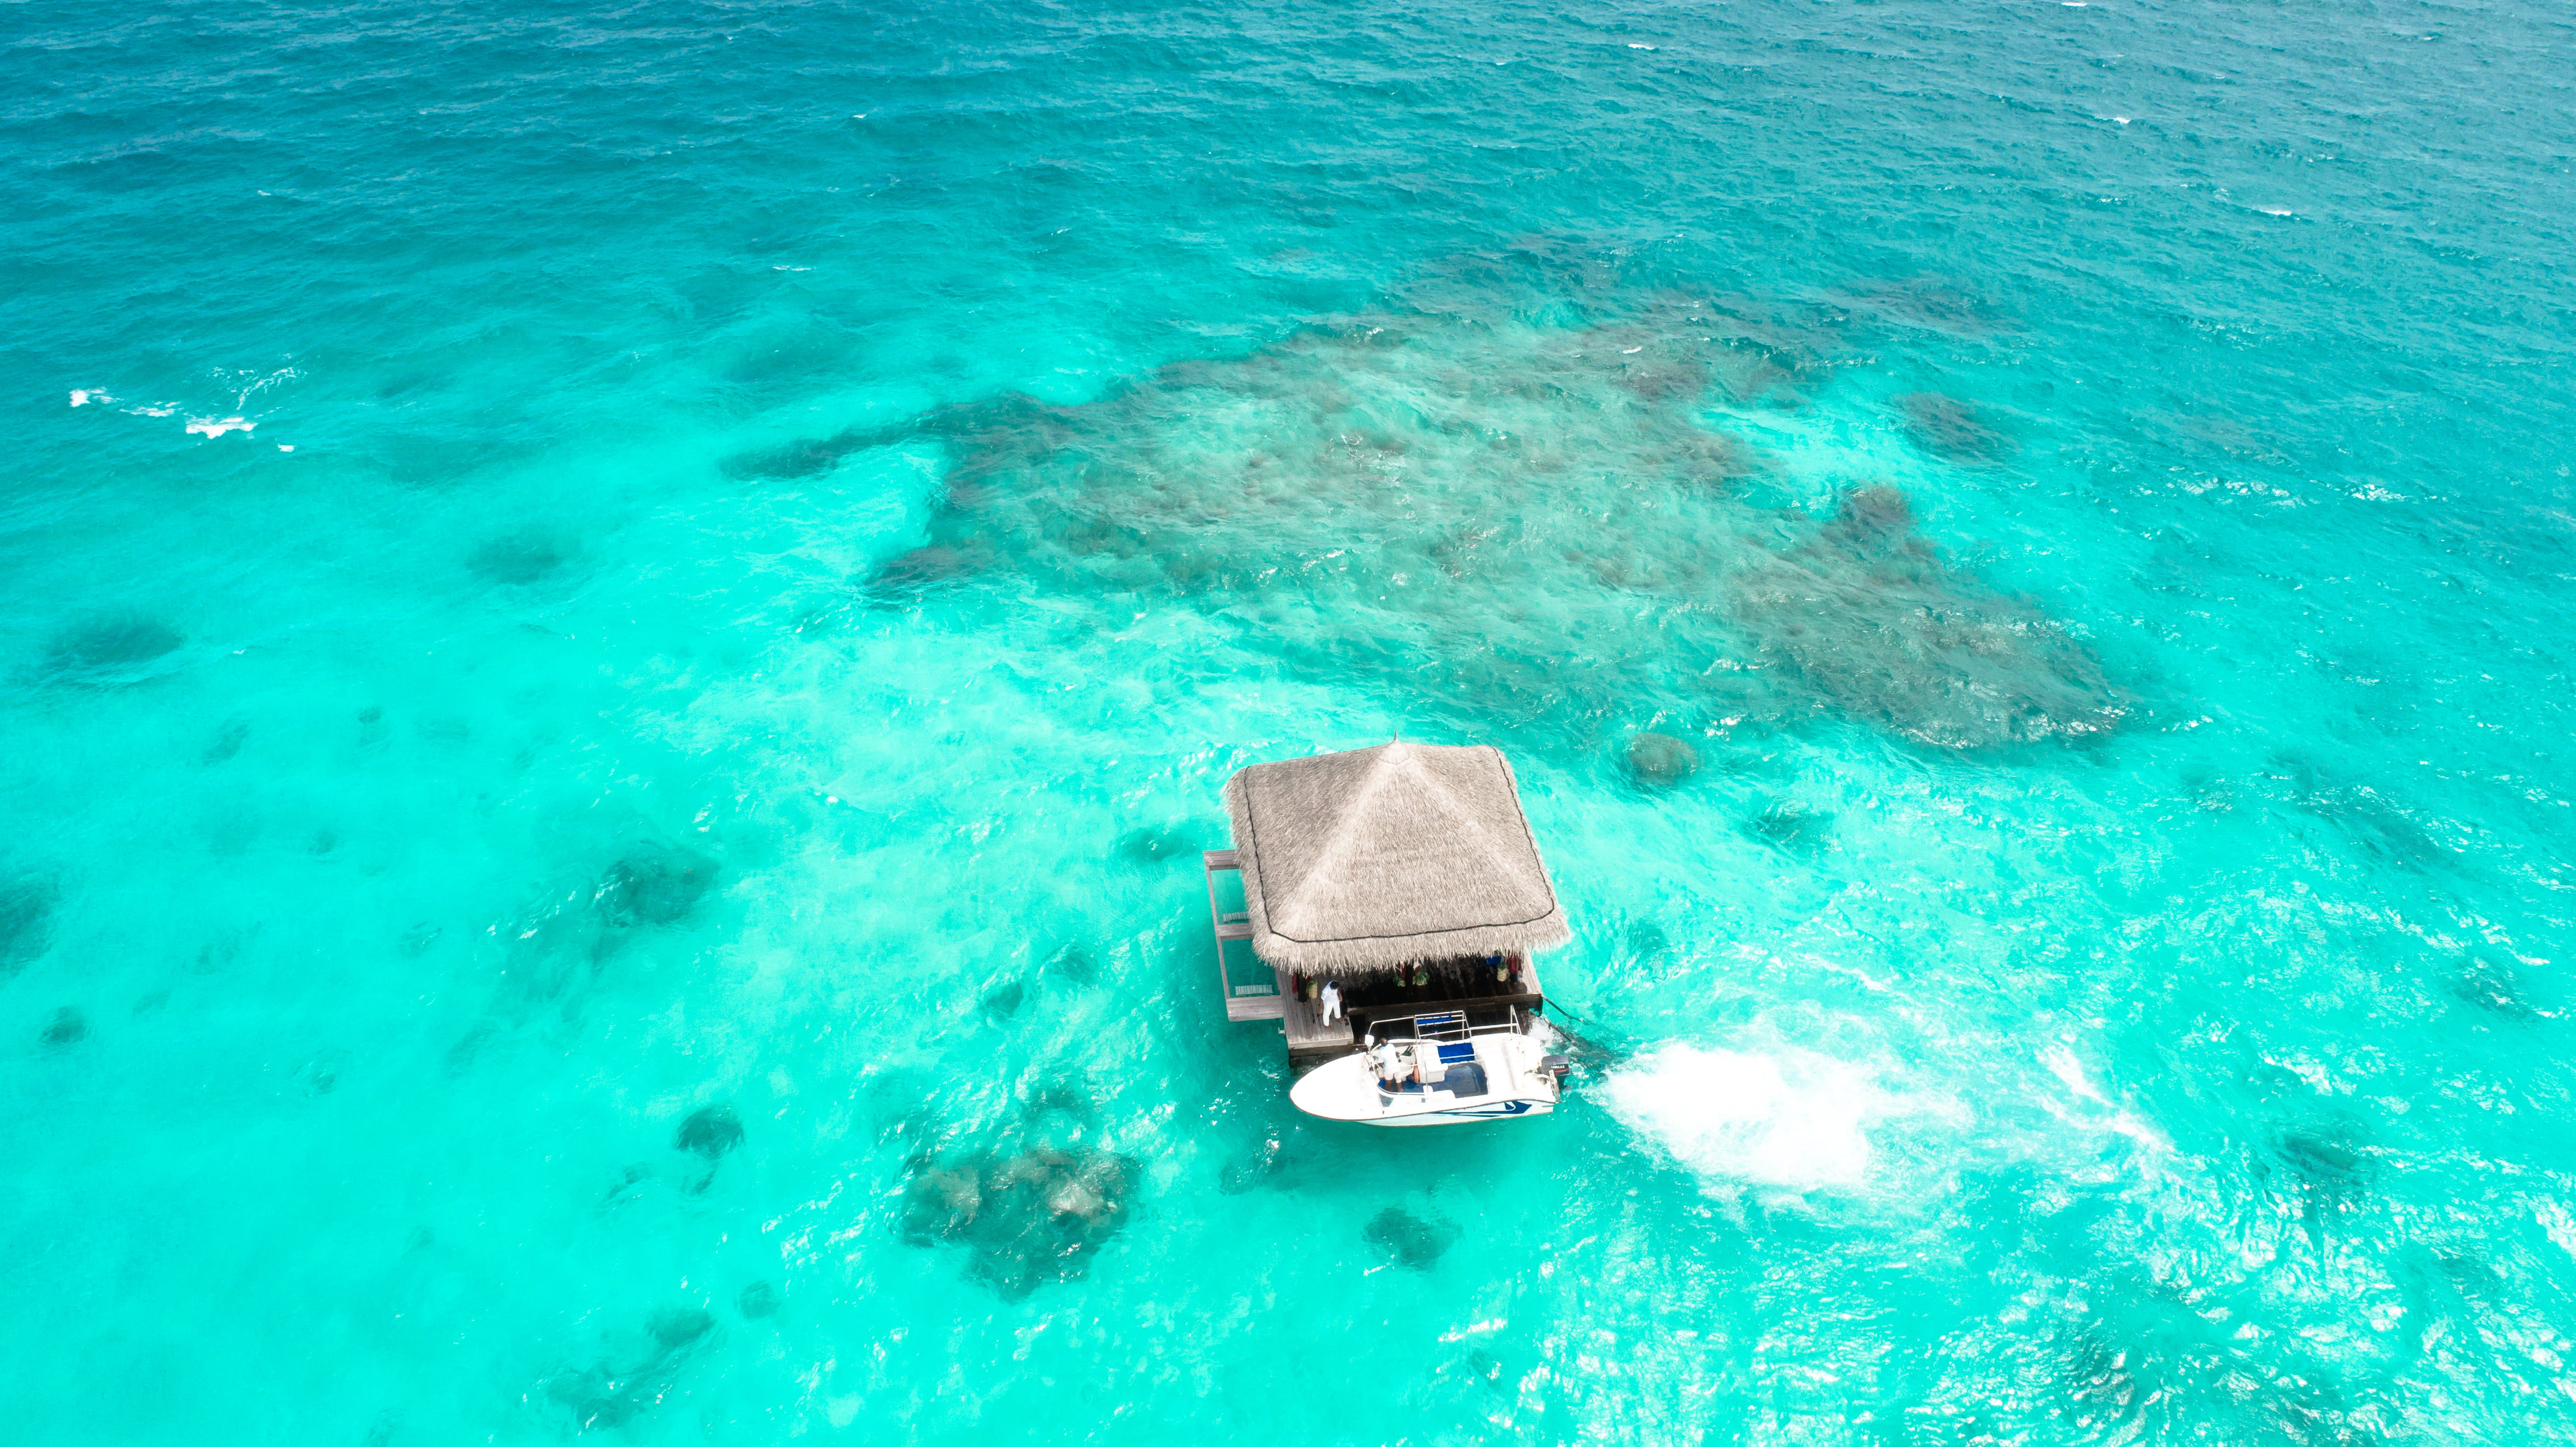 Aerial Photography of Brown House on Body of Water Beside Powerboat